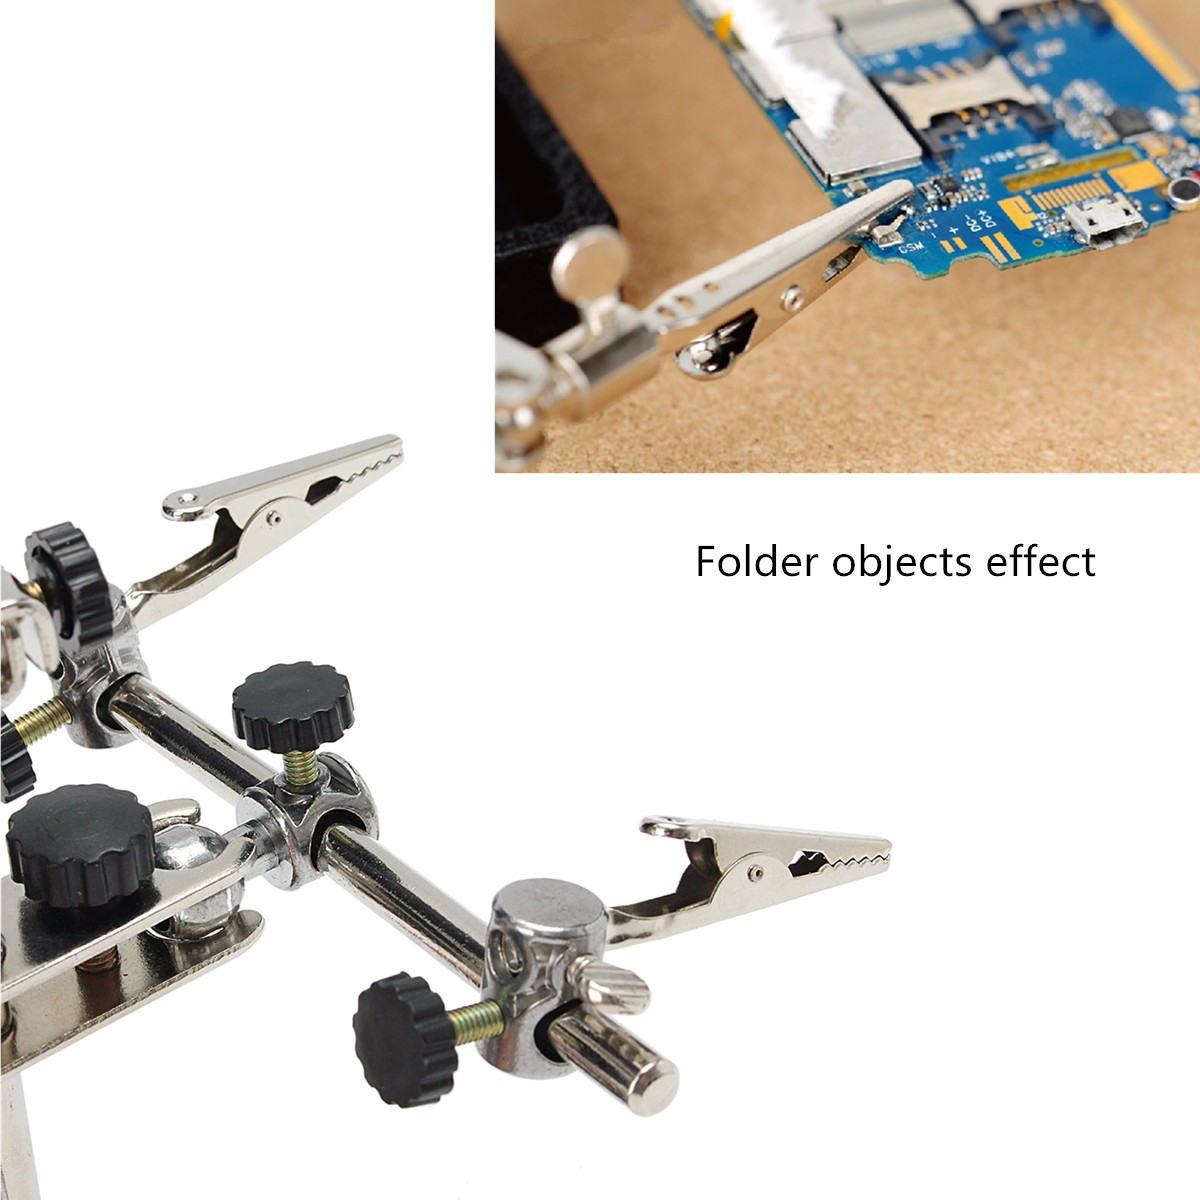 2X Soldering Clamp Stand Magnifier Glass Modelling Helping Hands with 2 LED Lights